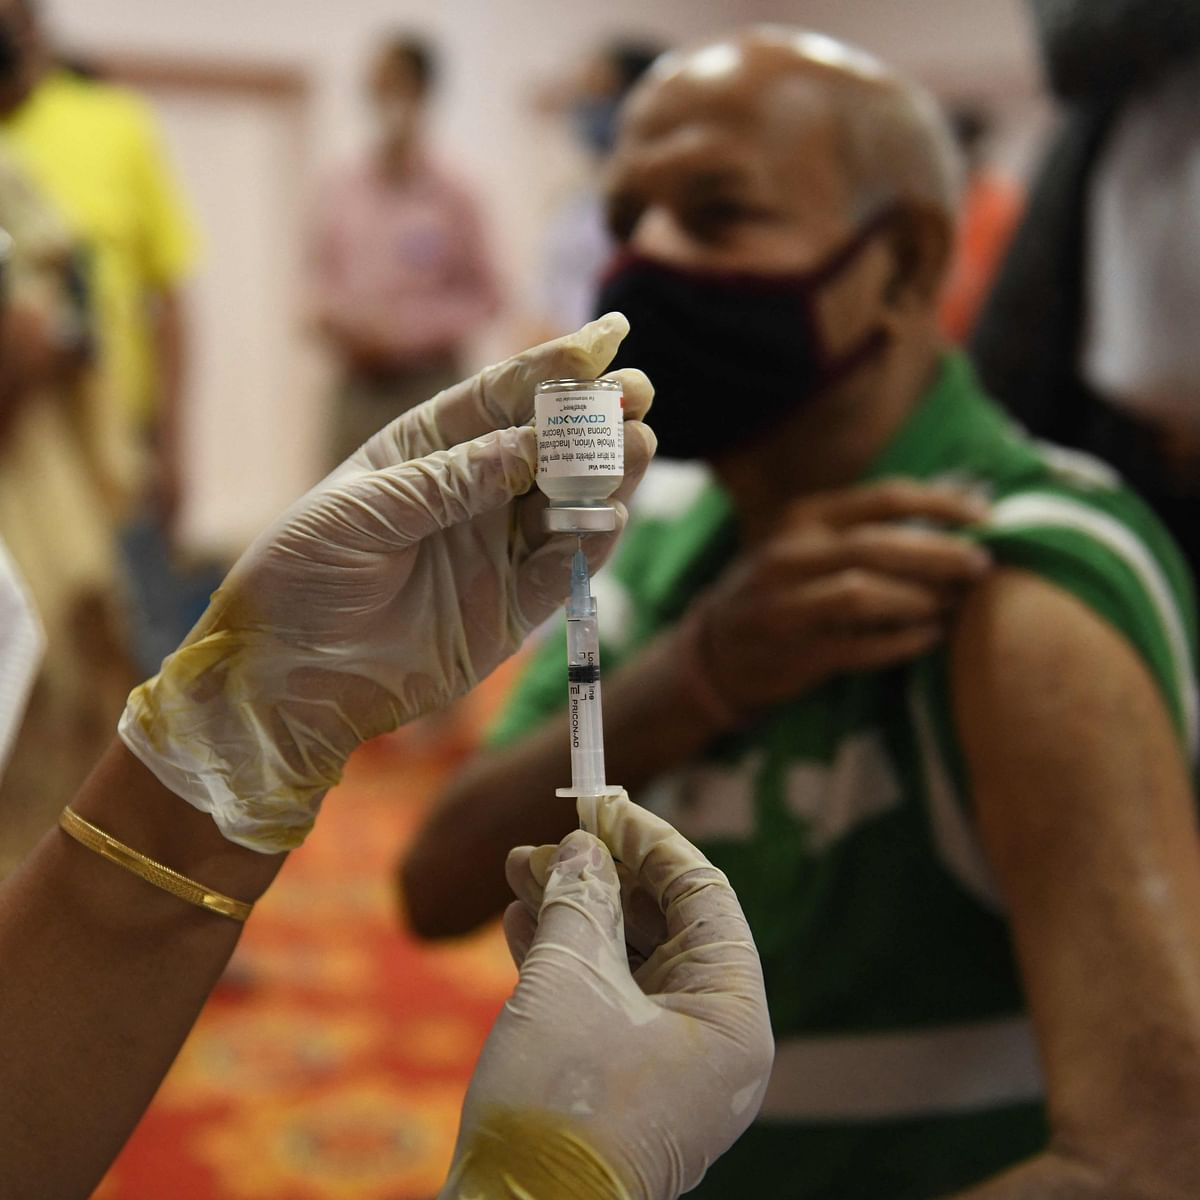 COVID-19 vaccination: 1.5 lakh people in Maharashtra skipped 2nd dose, says state health department